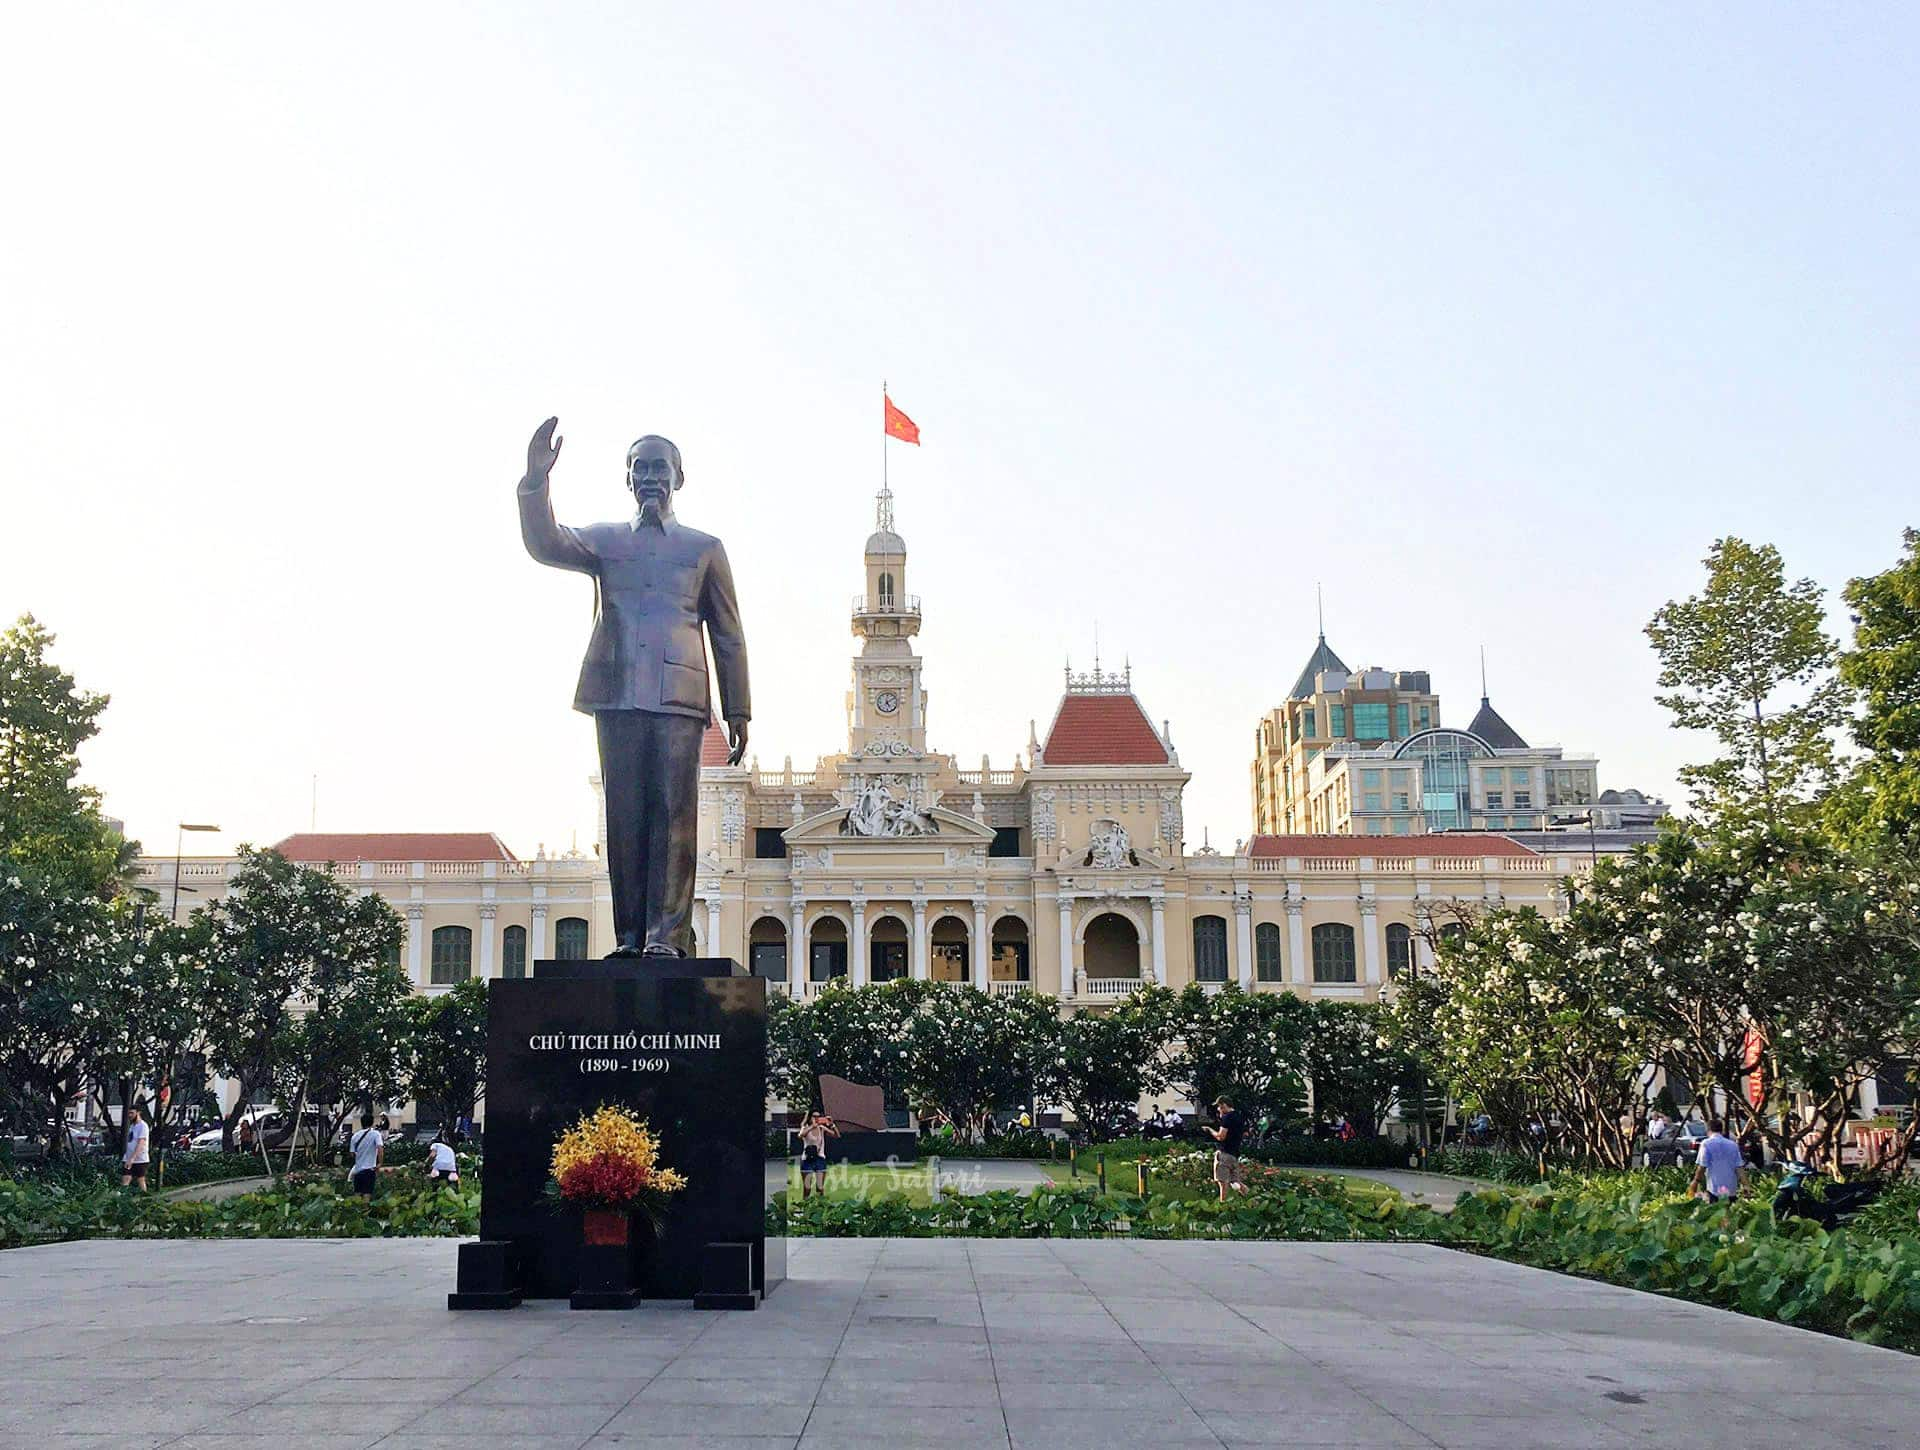 Statue of Ho Chi Minh with City Hall building in background